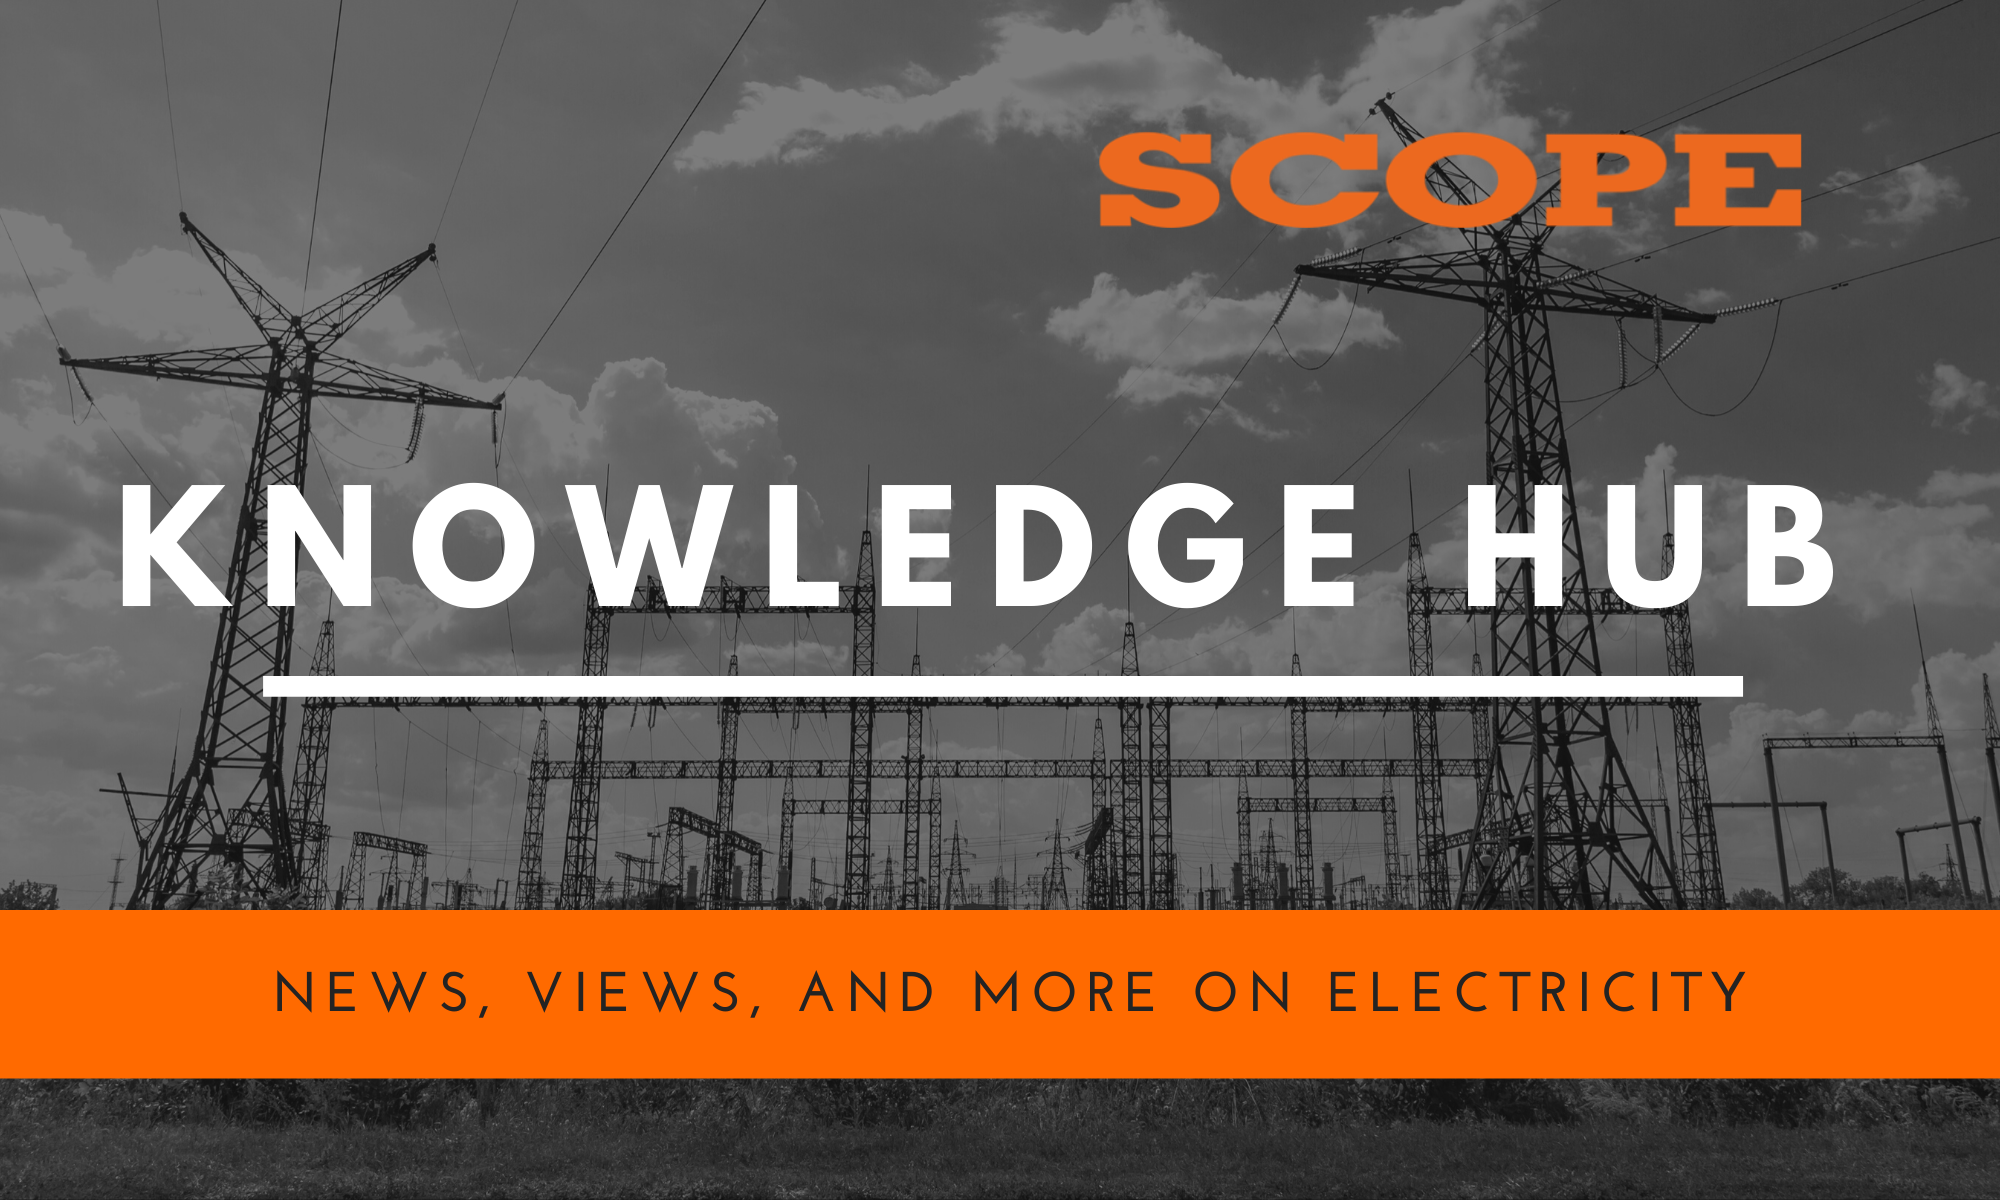 SCOPE Corporate Blog